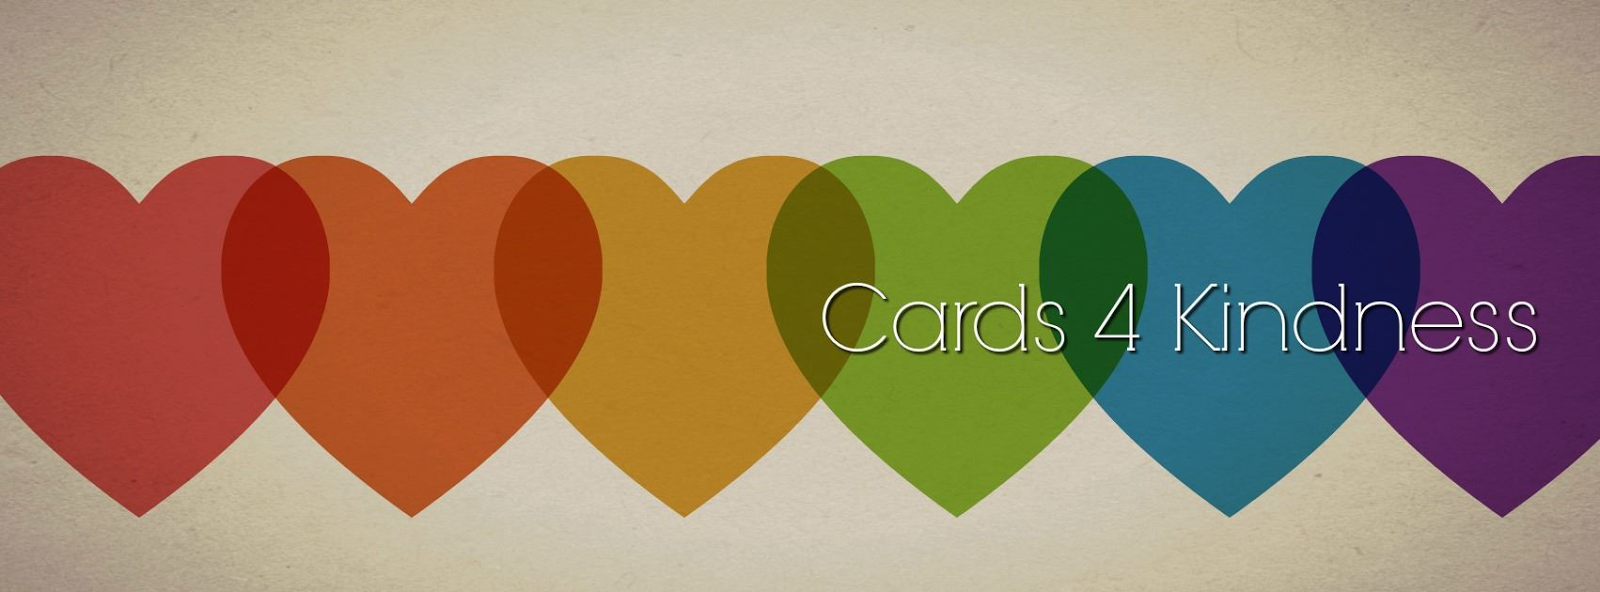 Member of  Cards 4 Kindness